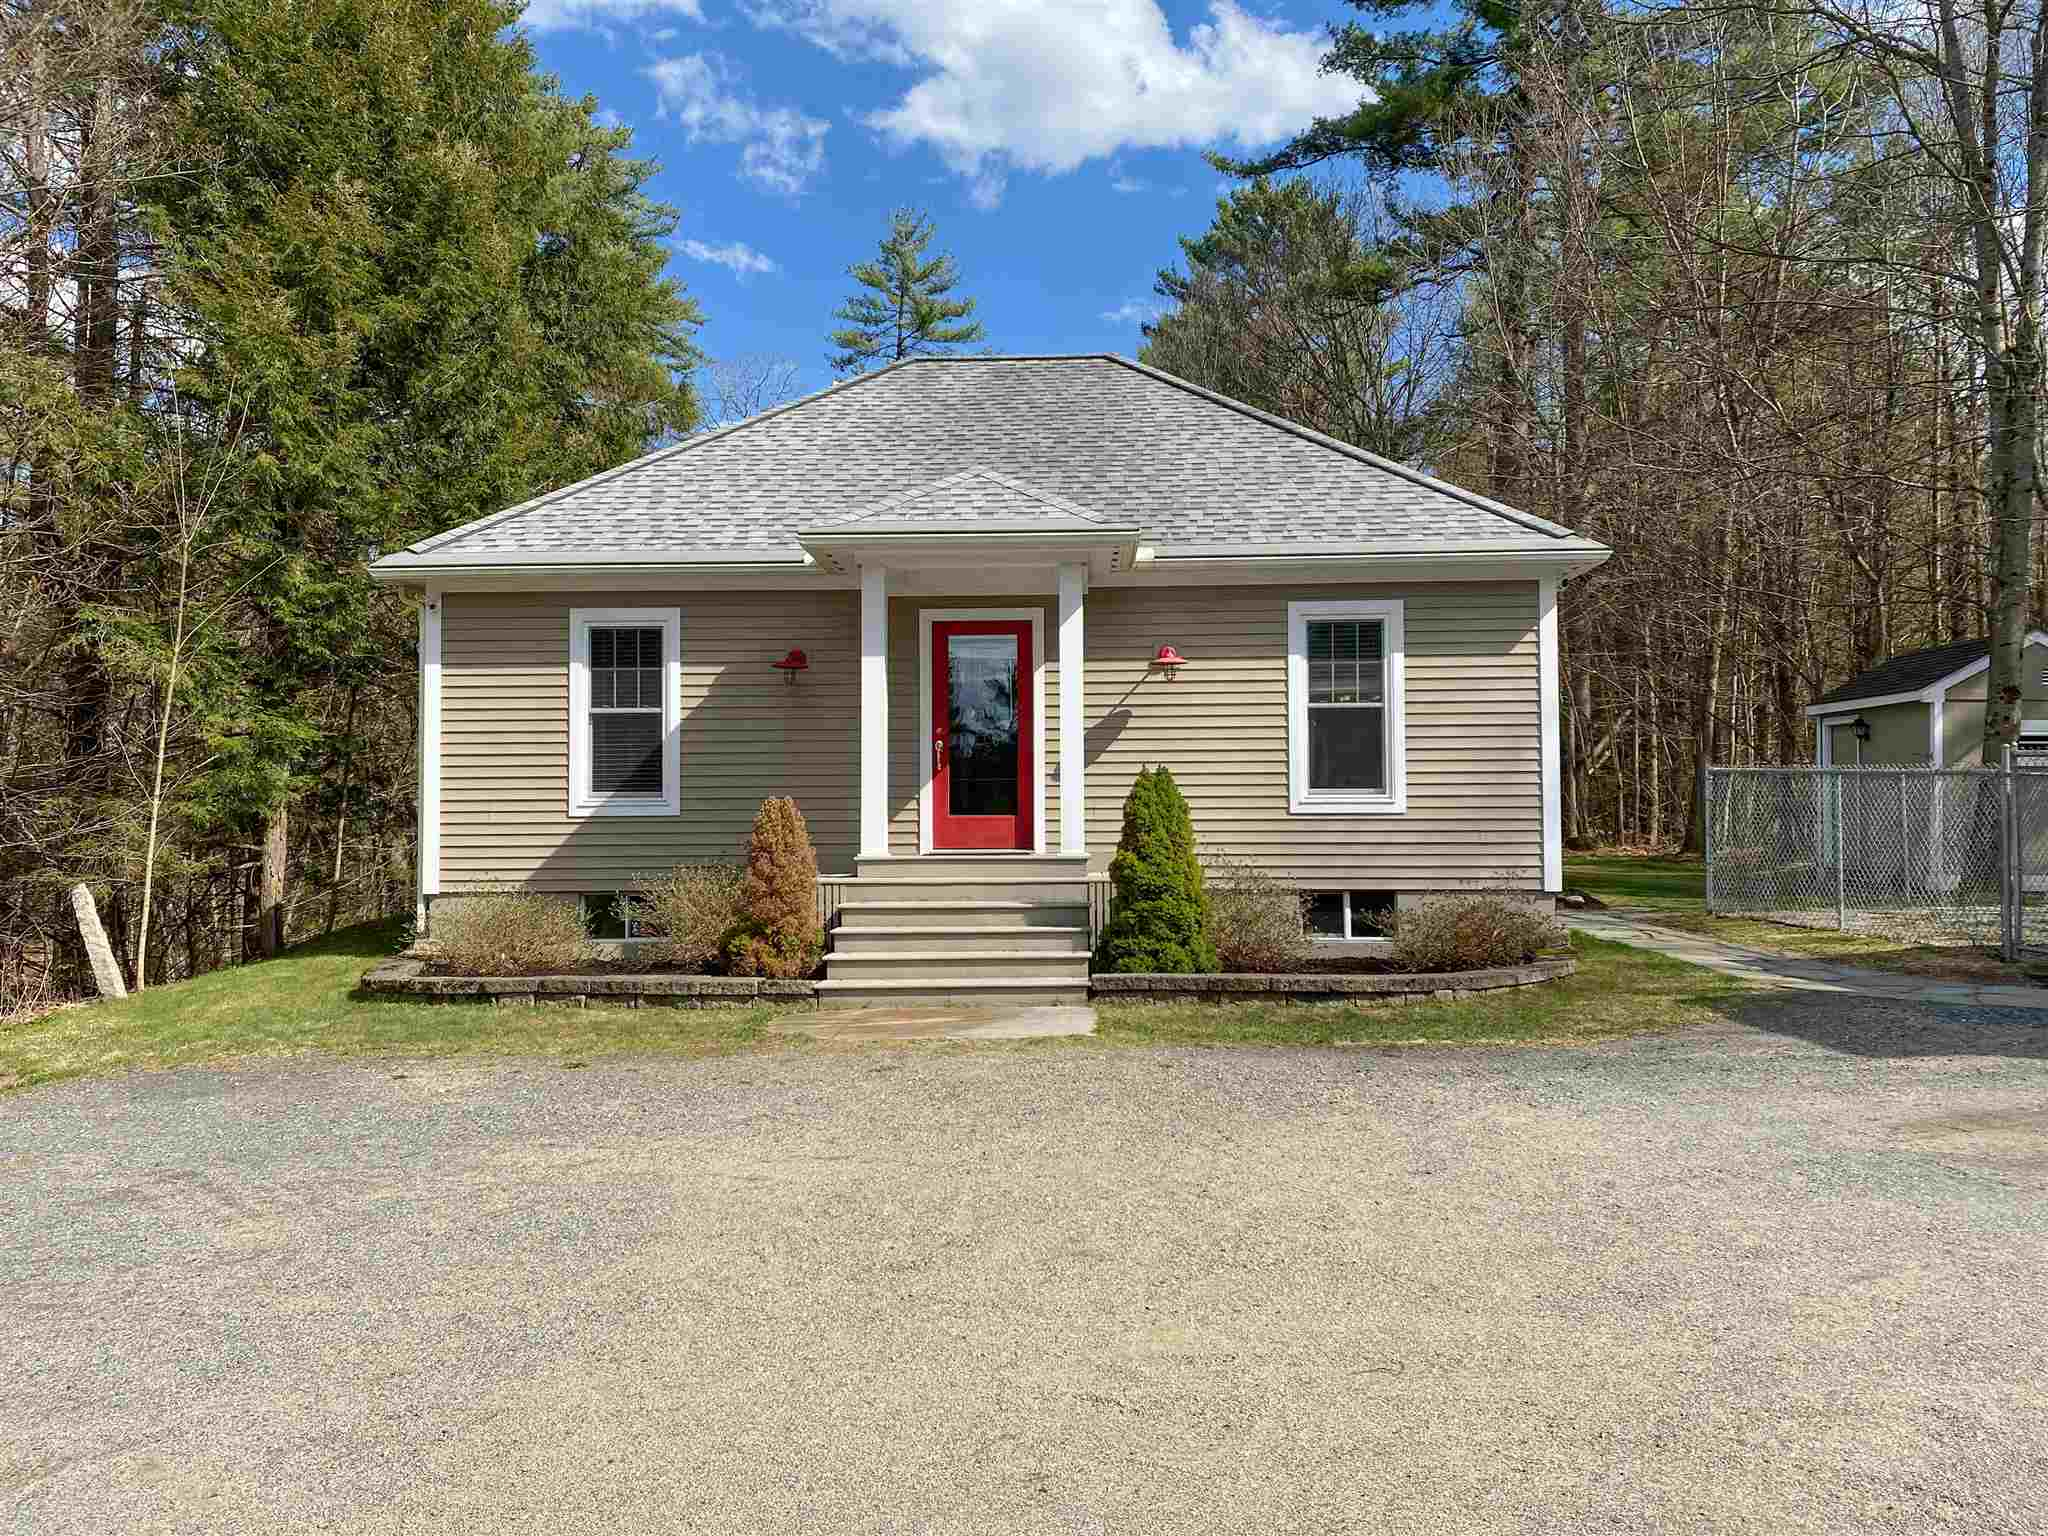 MLS 4803631: 2959 Route 25A, Orford NH